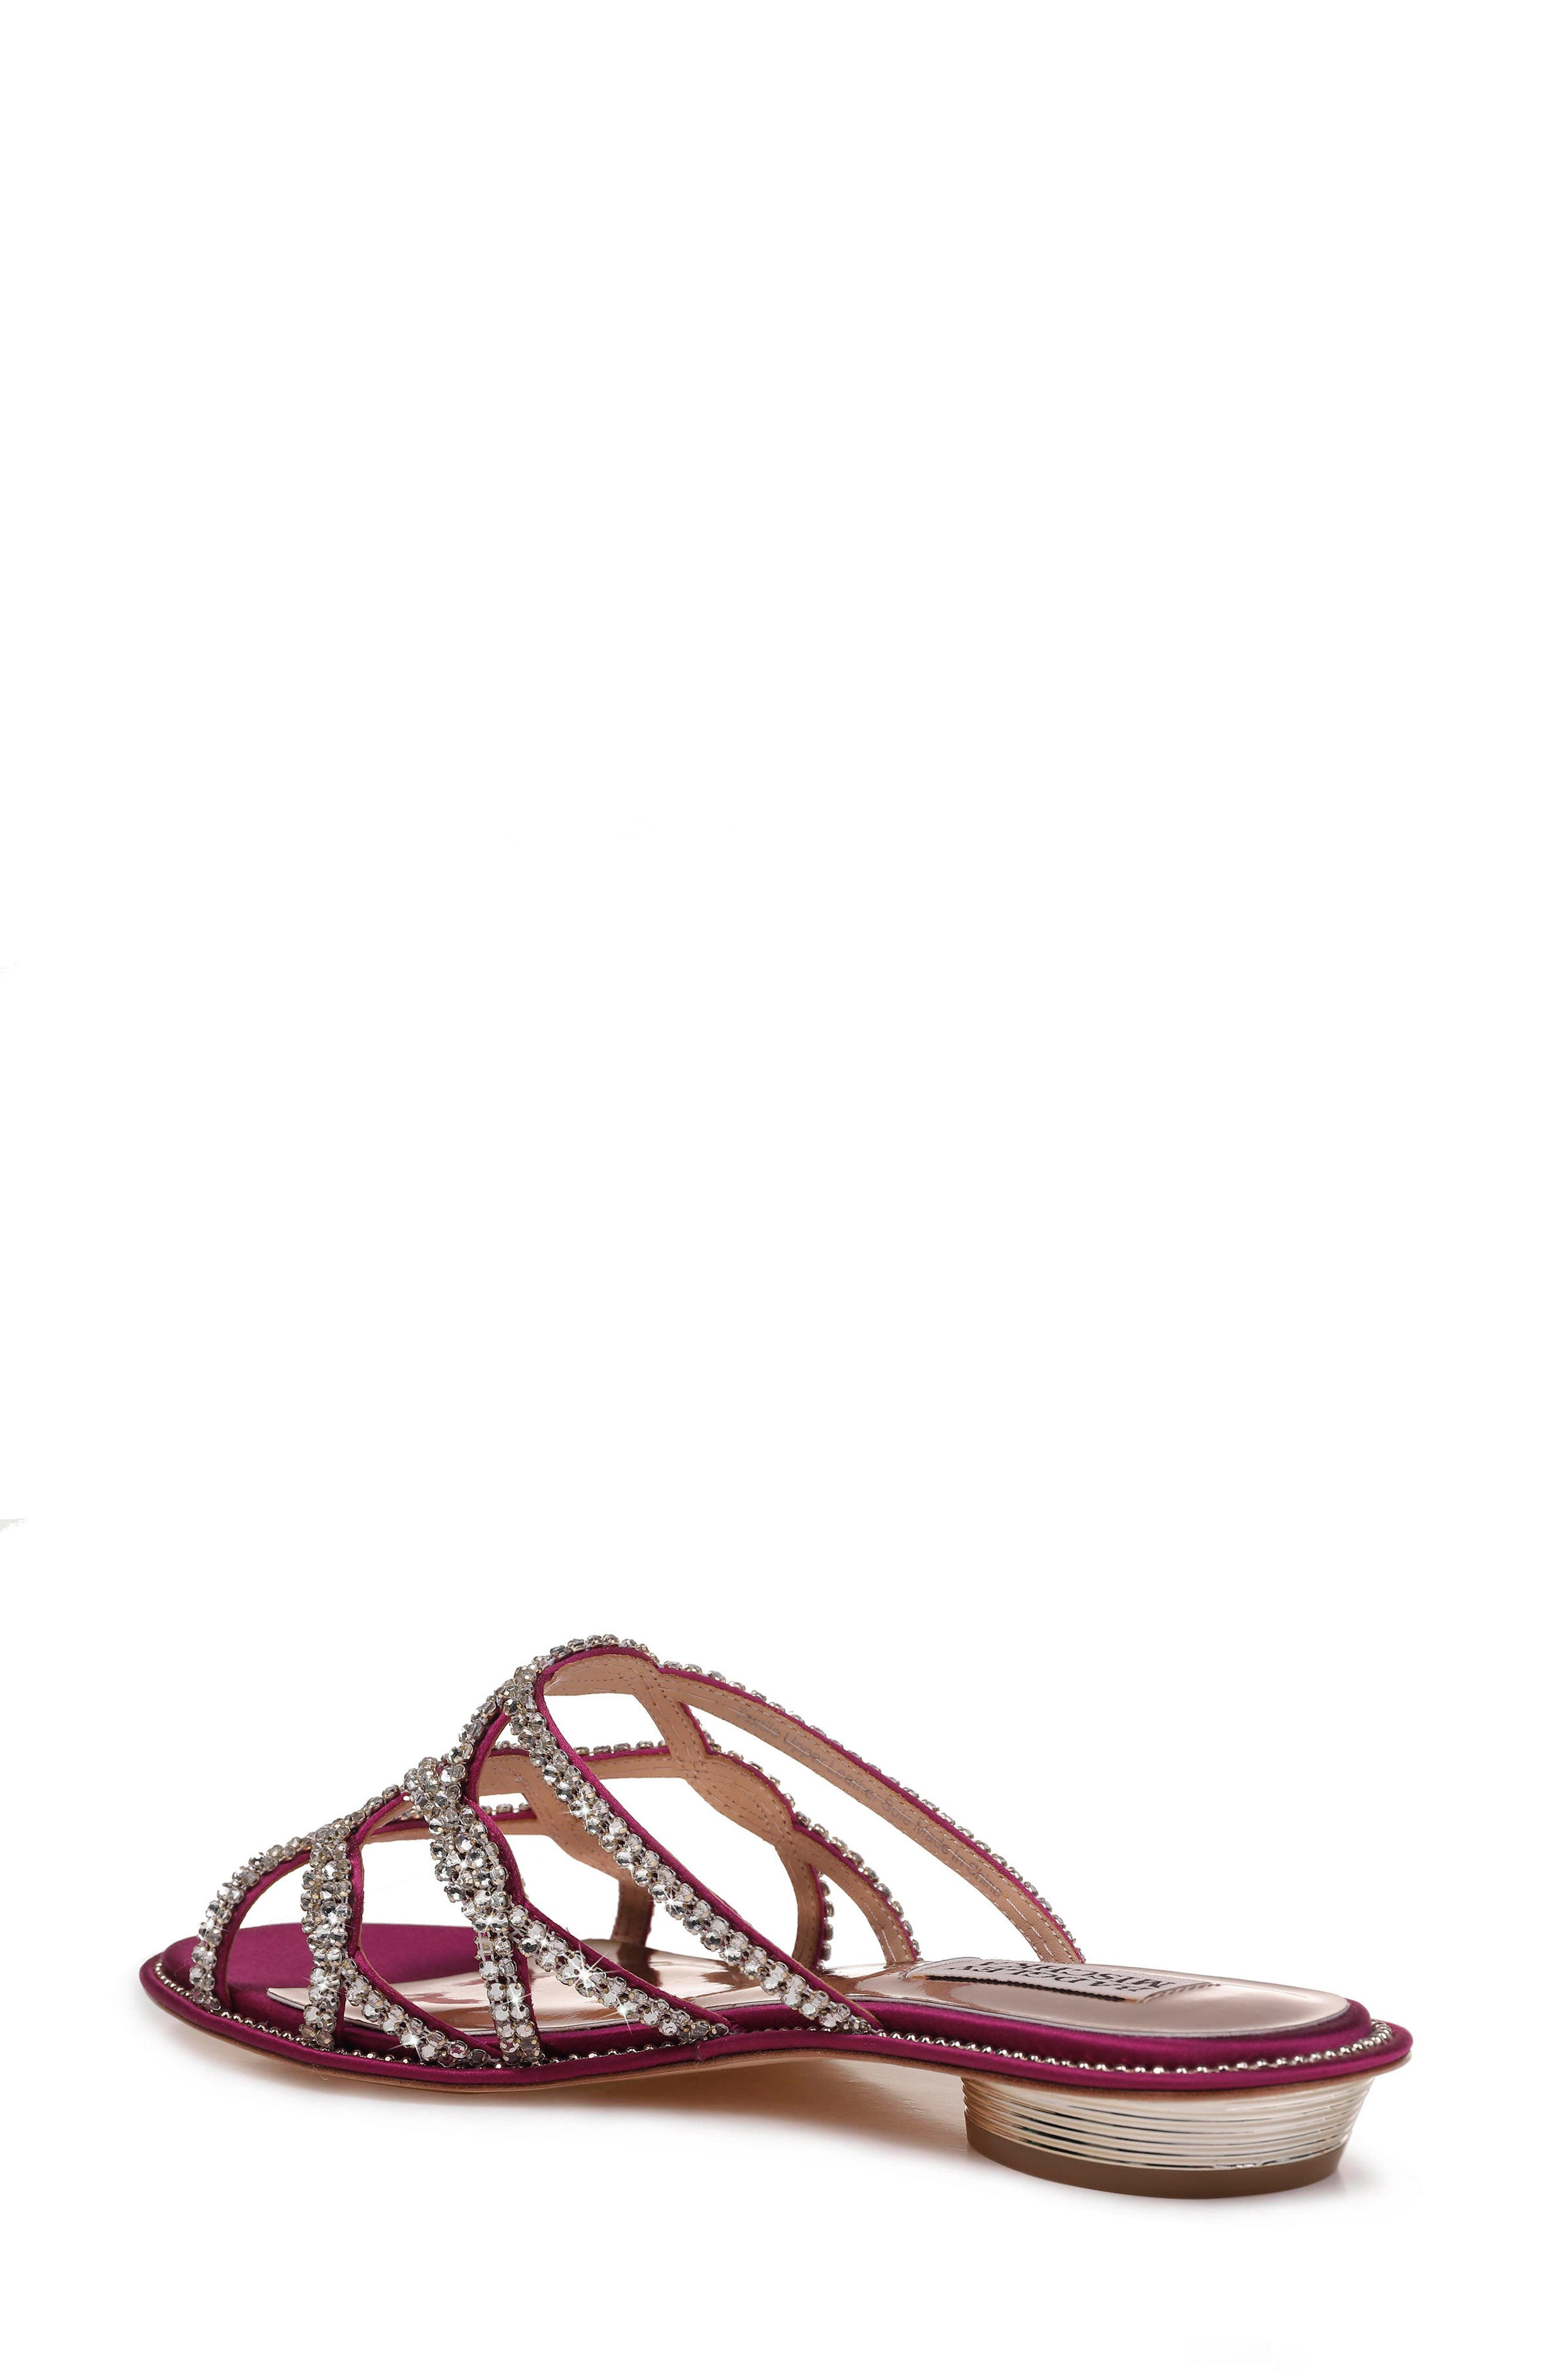 Sofie Strappy Sandal,                             Alternate thumbnail 2, color,                             Mulberry Satin